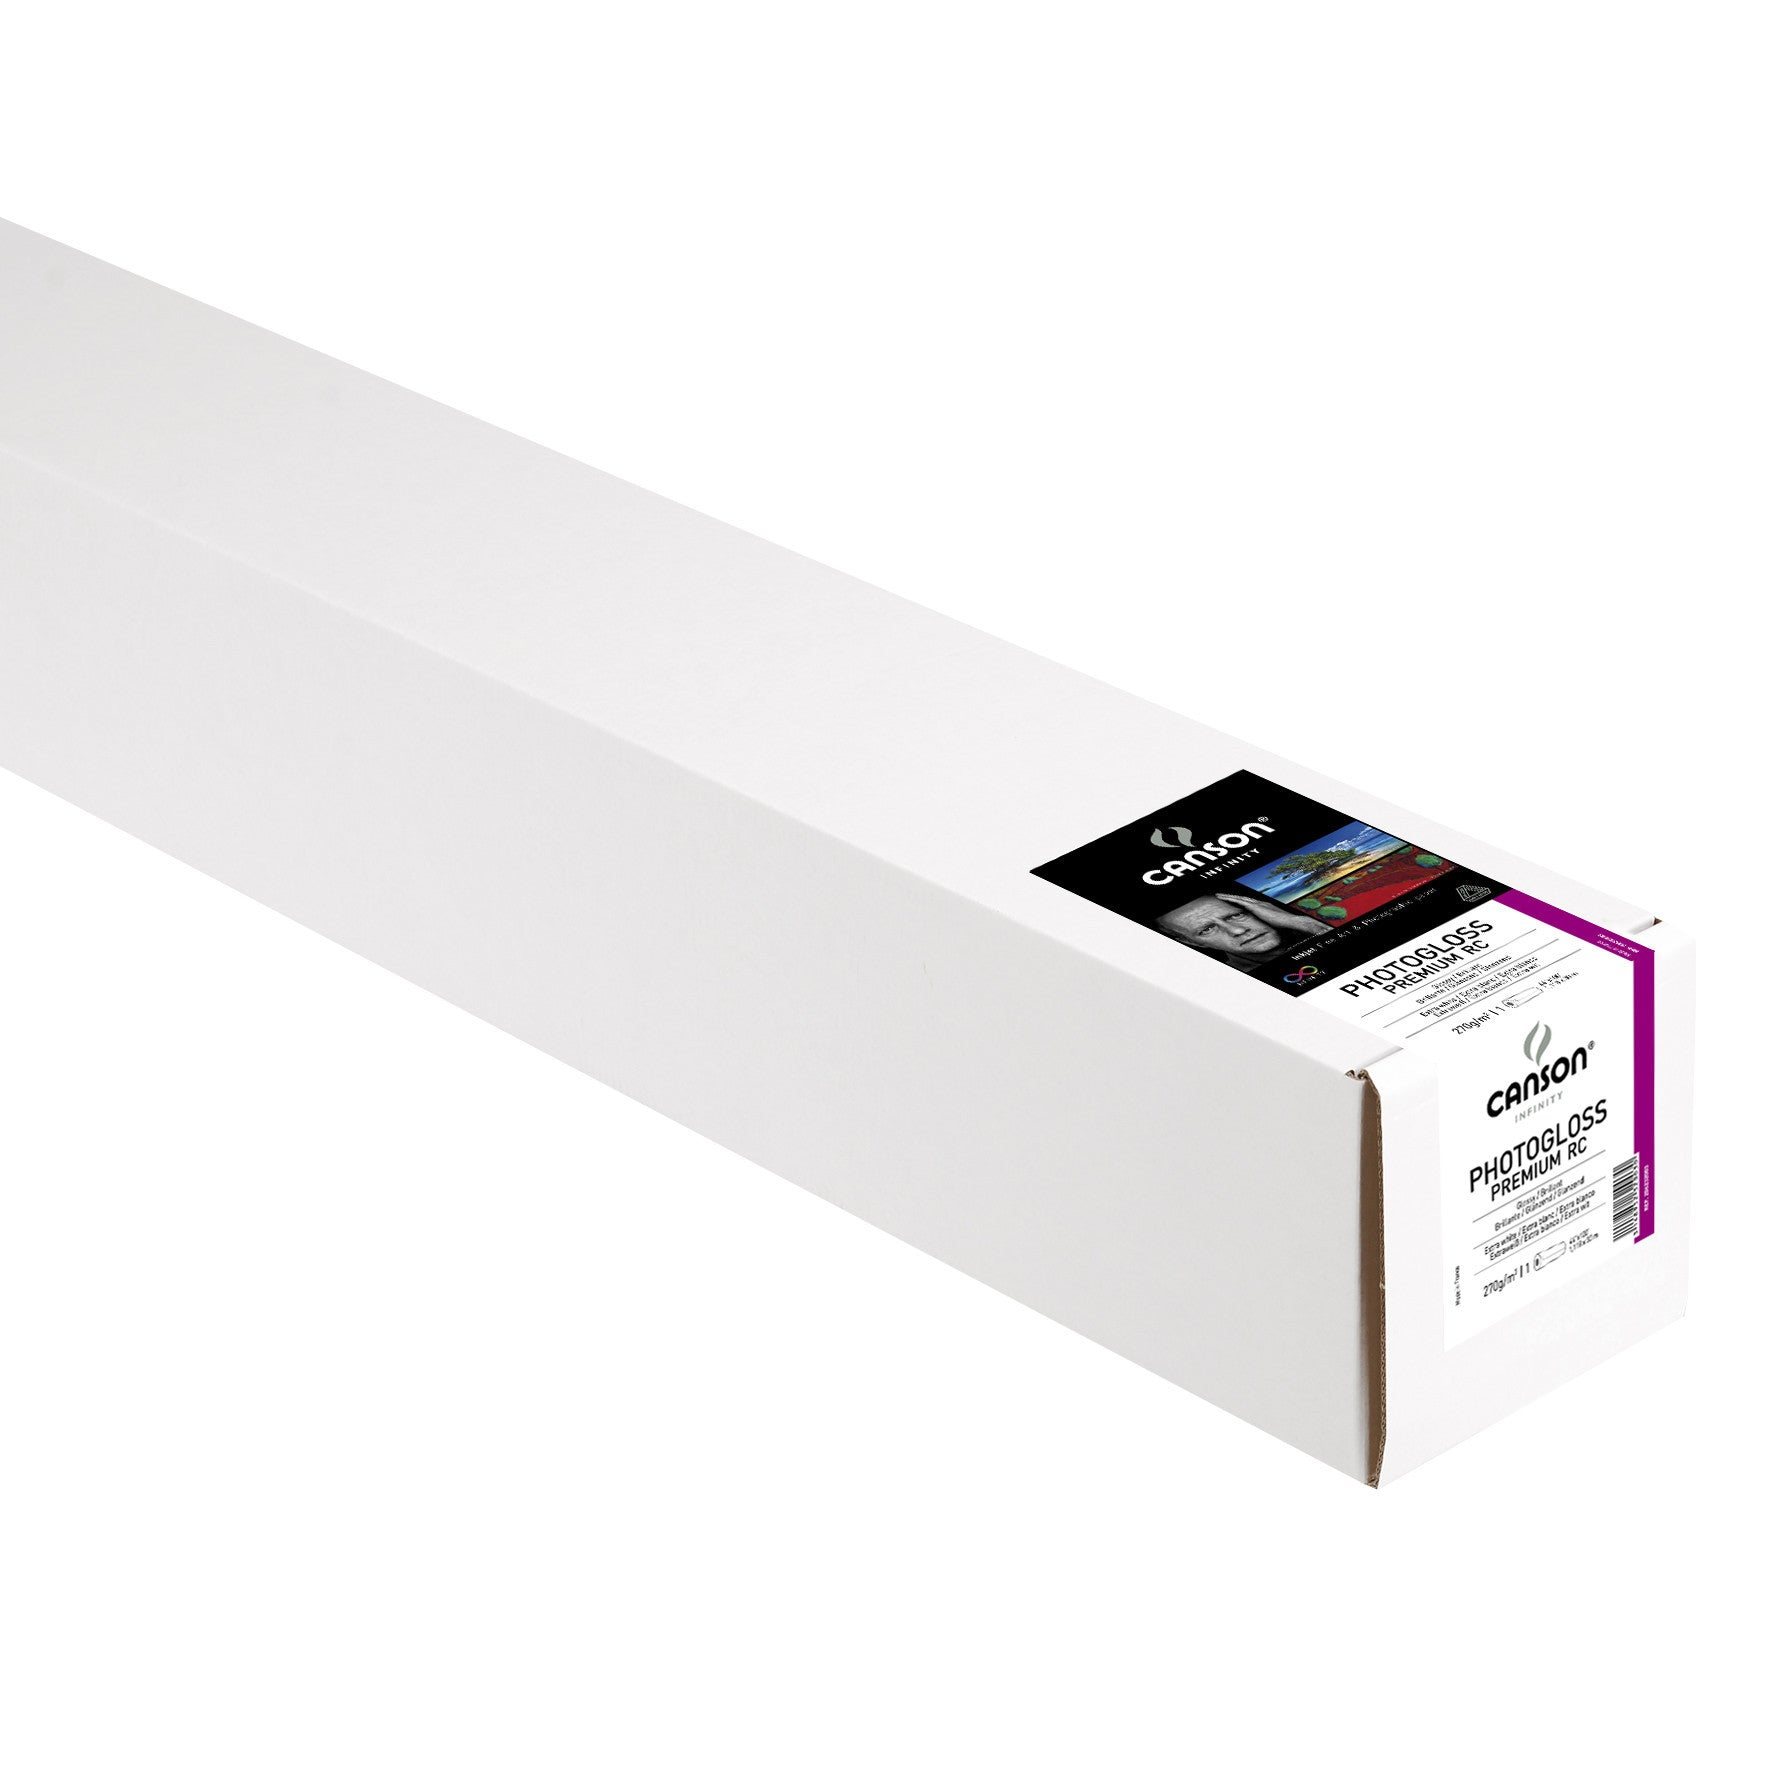 "Canson Infinity Photo Gloss Premium RC - 270gsm - 44""x100' roll"